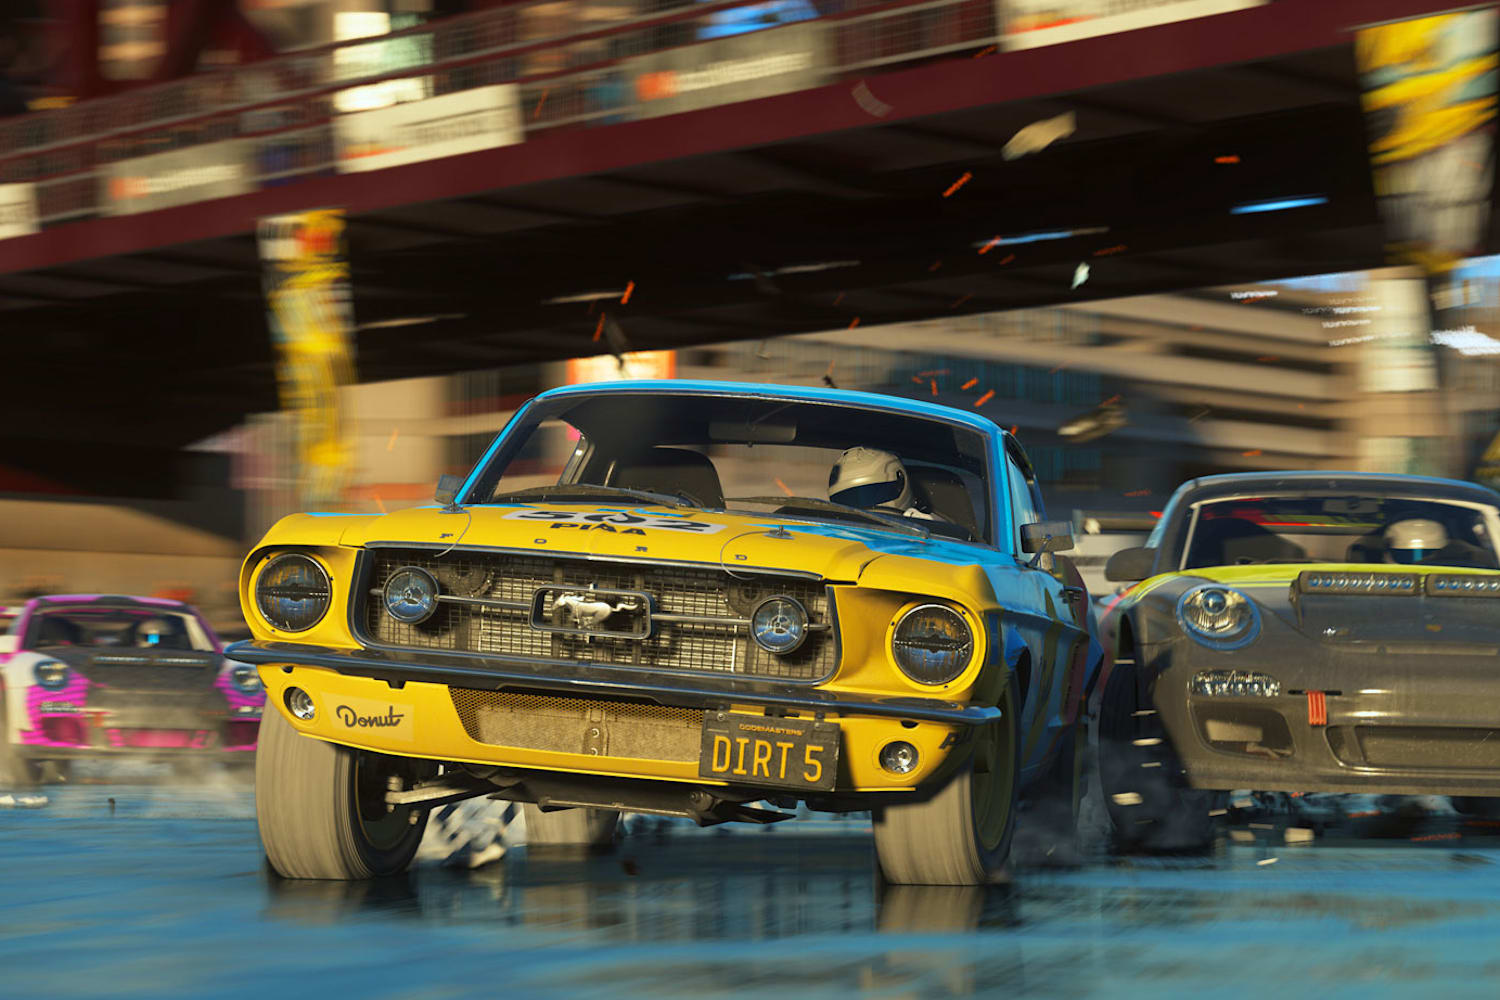 Codemasters on what's new in DiRT 5.